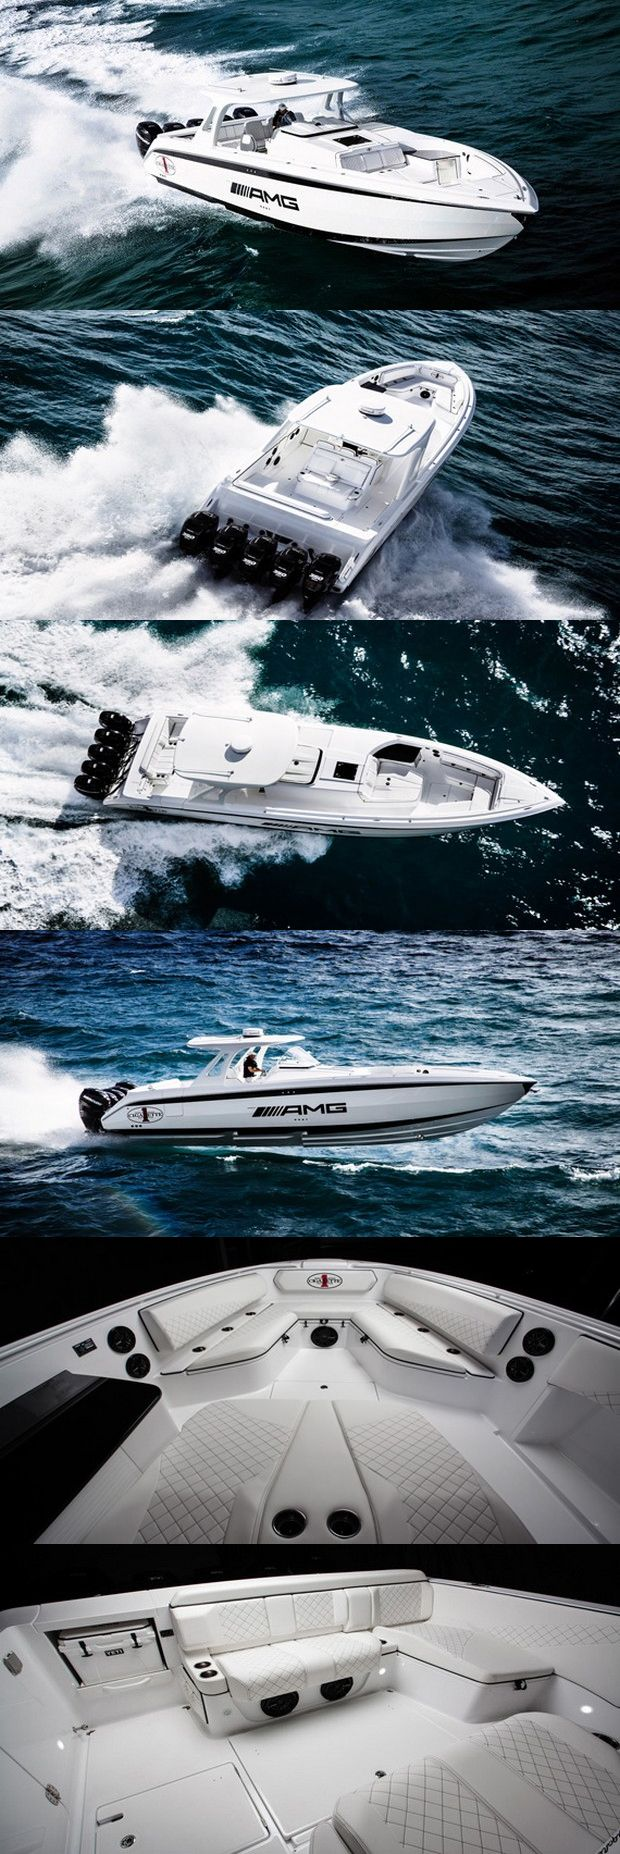 ♂ billionaires boys club Luxury Yacht The Cigarette 42 Huntress, inspired by Mercedes G63 AMG » Cigarette 42 Huntress 2 Original from http://luxatic.com/the-cigarette-42-huntress-inspired-by-mercedes-g63-amg/cigarette-42-huntress-2/